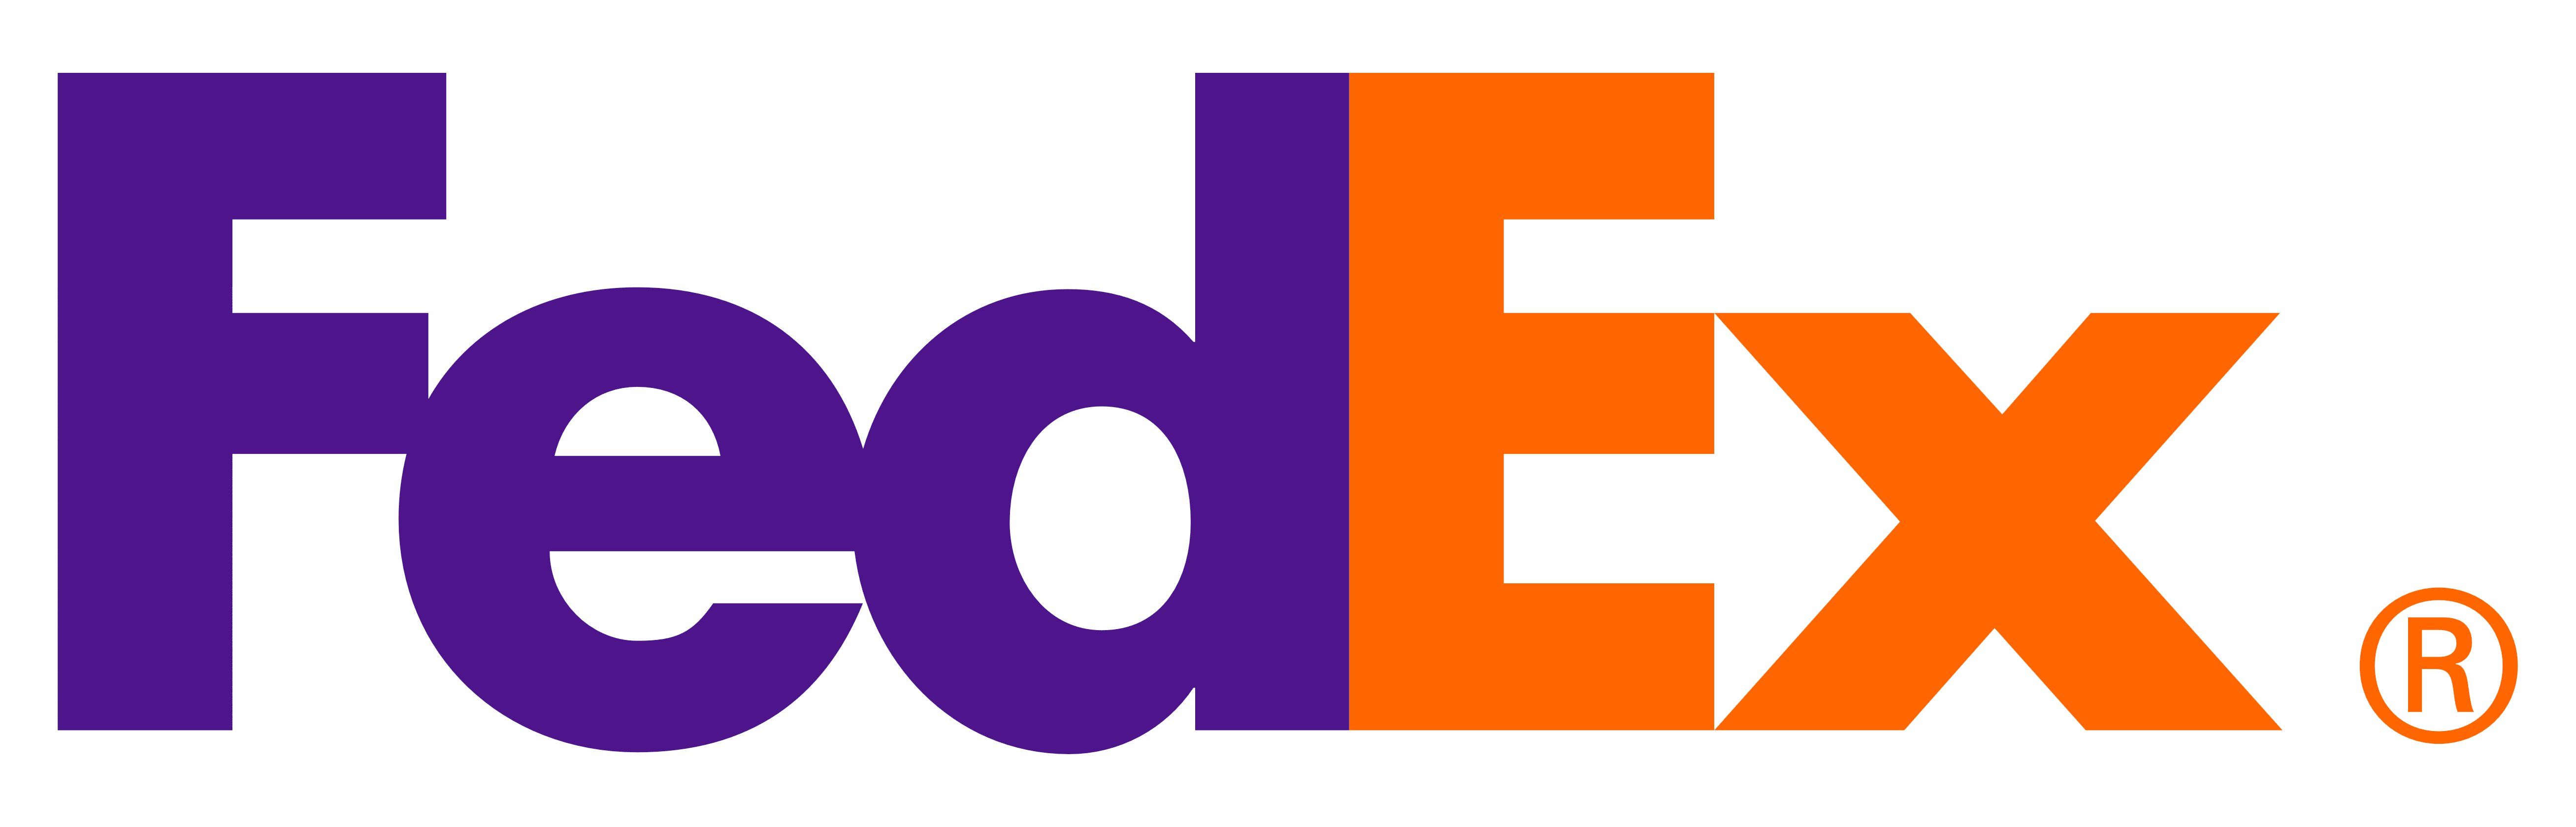 Trusted courier delivery with FedEx